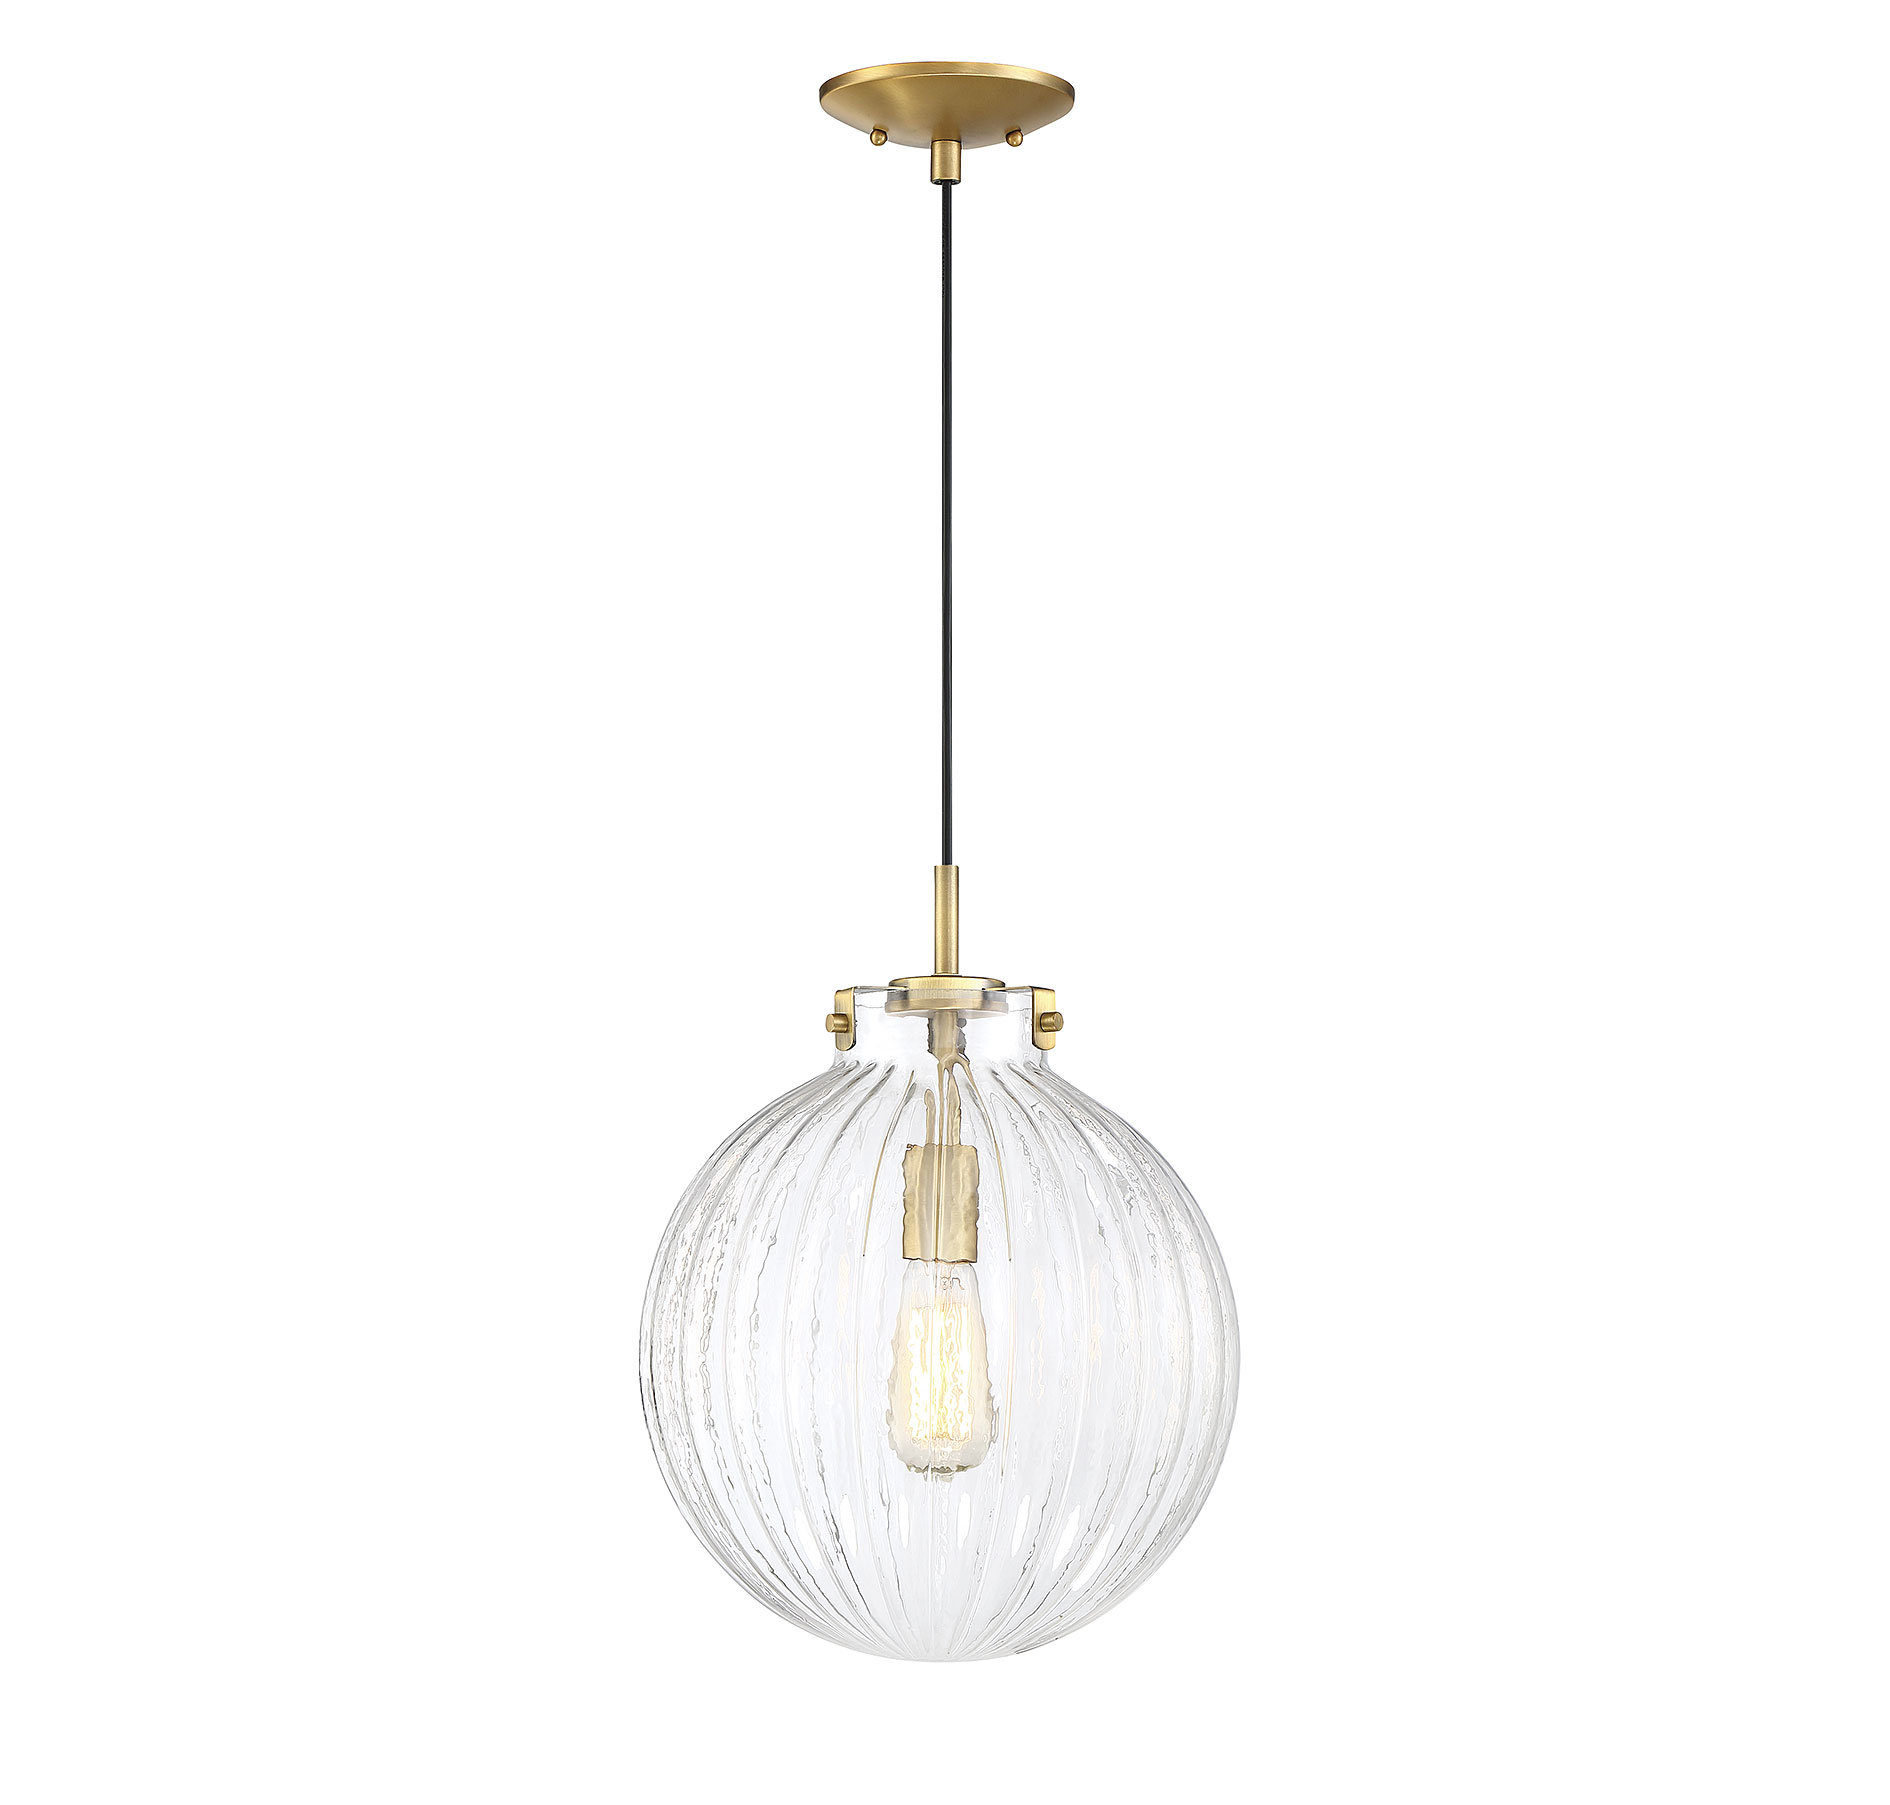 Nevels 1 Light Single Globe Pendant Regarding Cayden 1 Light Single Globe Pendants (View 22 of 30)